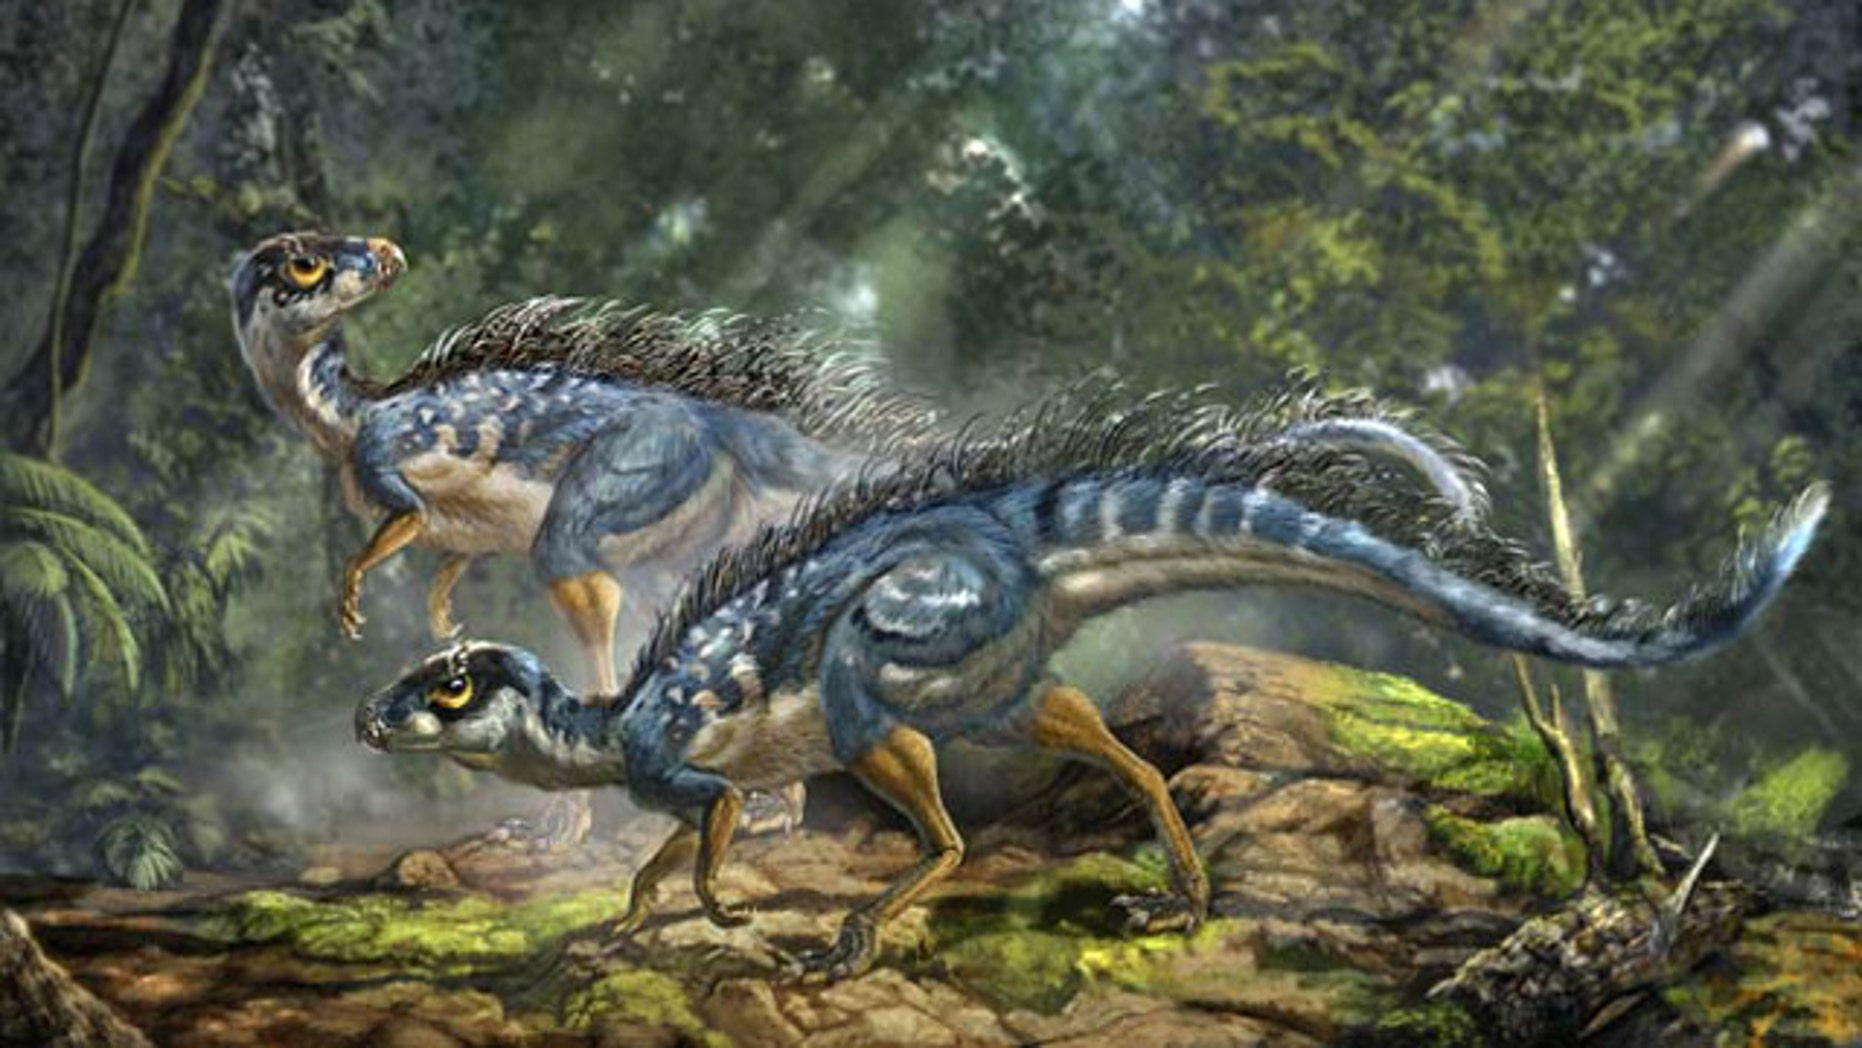 Artist's reconstruction of Tianyulong confuciusi, a feathered heterodontosaurid ornithischian dinosaur.